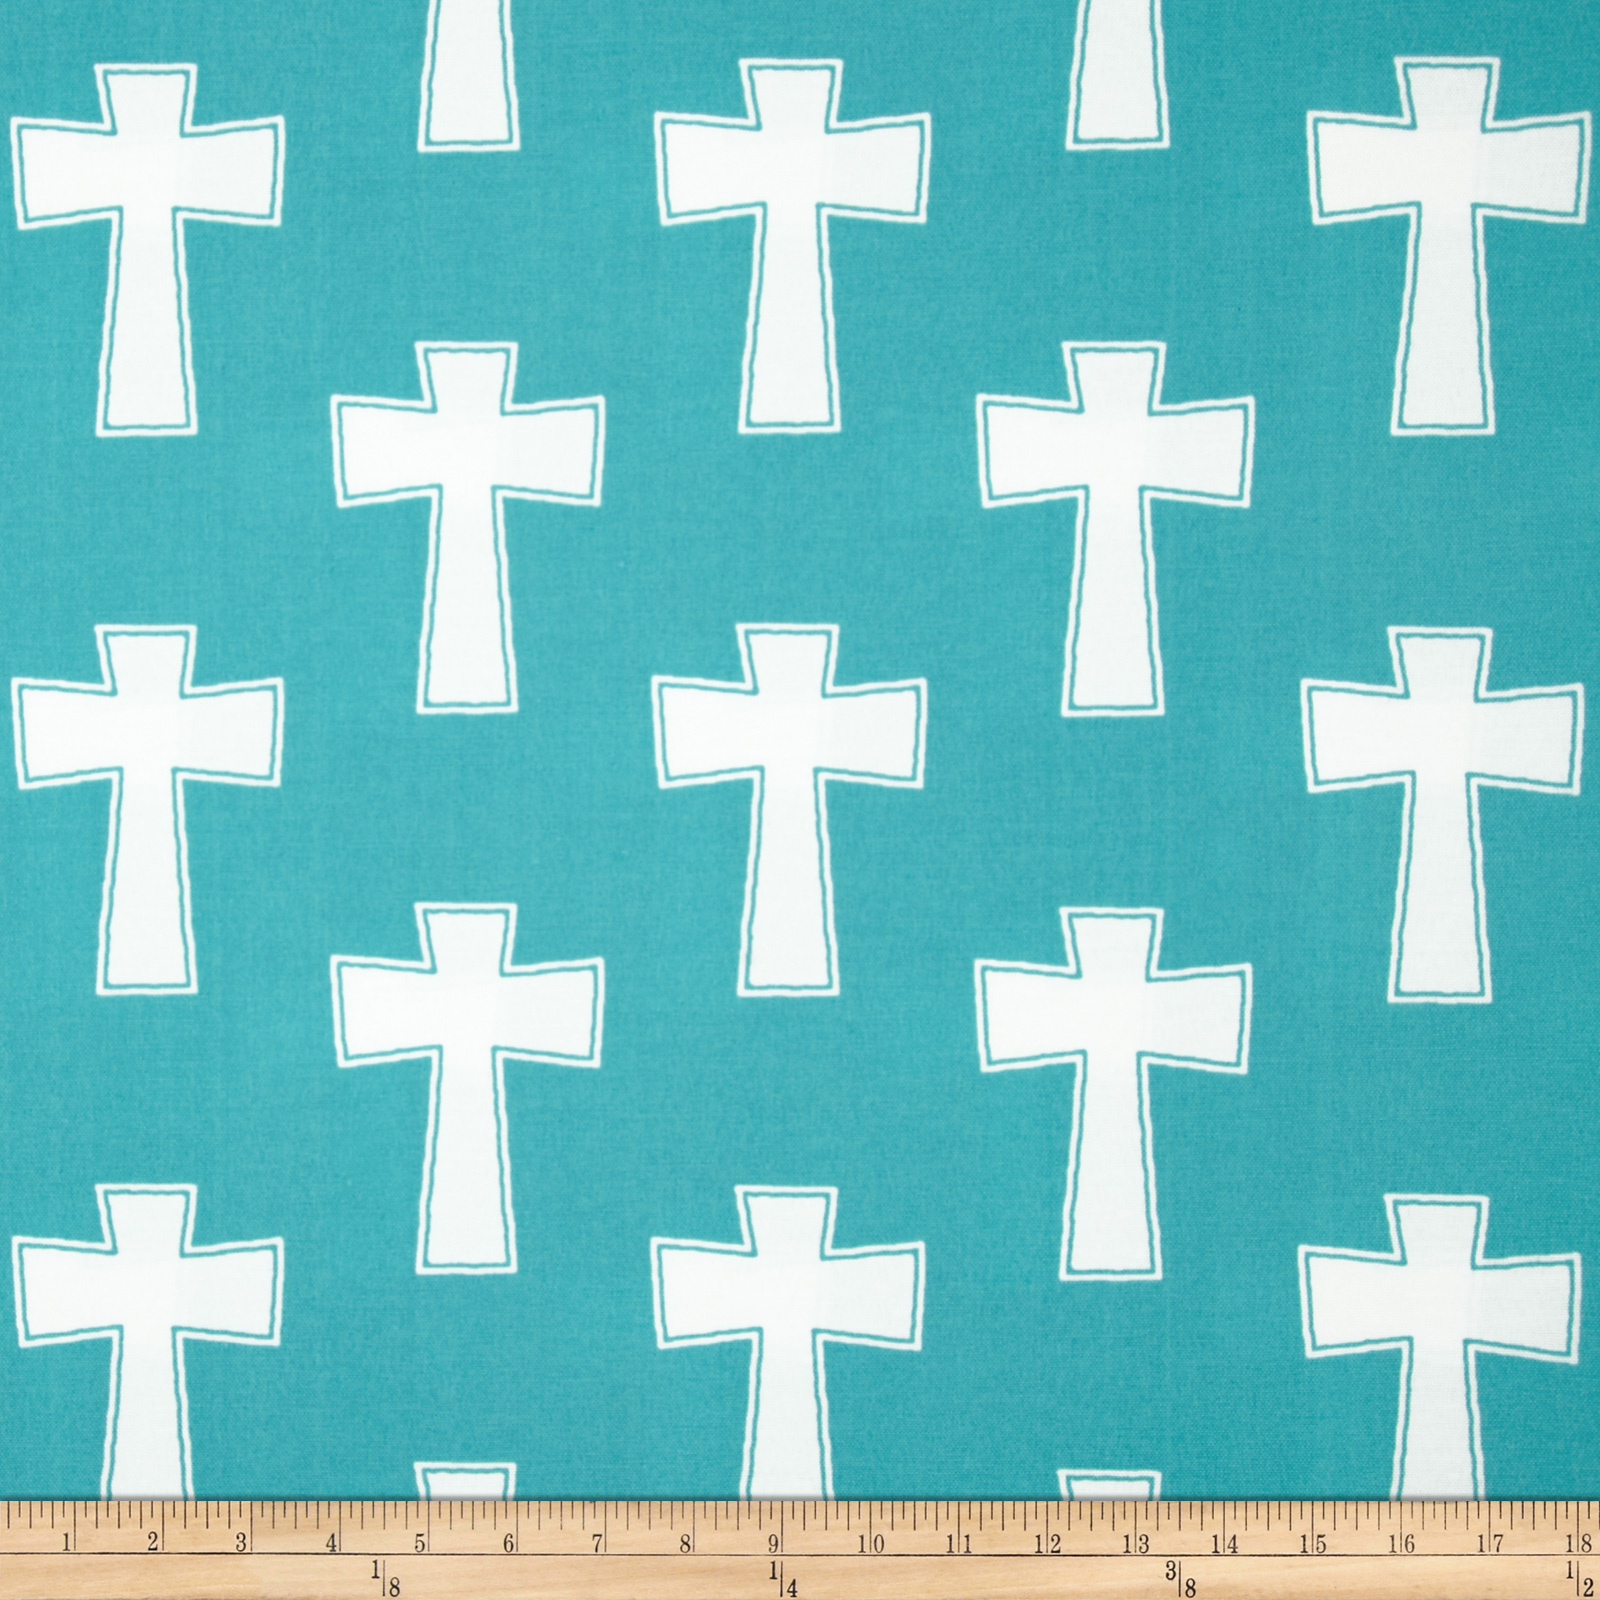 Premier Prints Indoor/Outdoor Cross Ocean Fabric